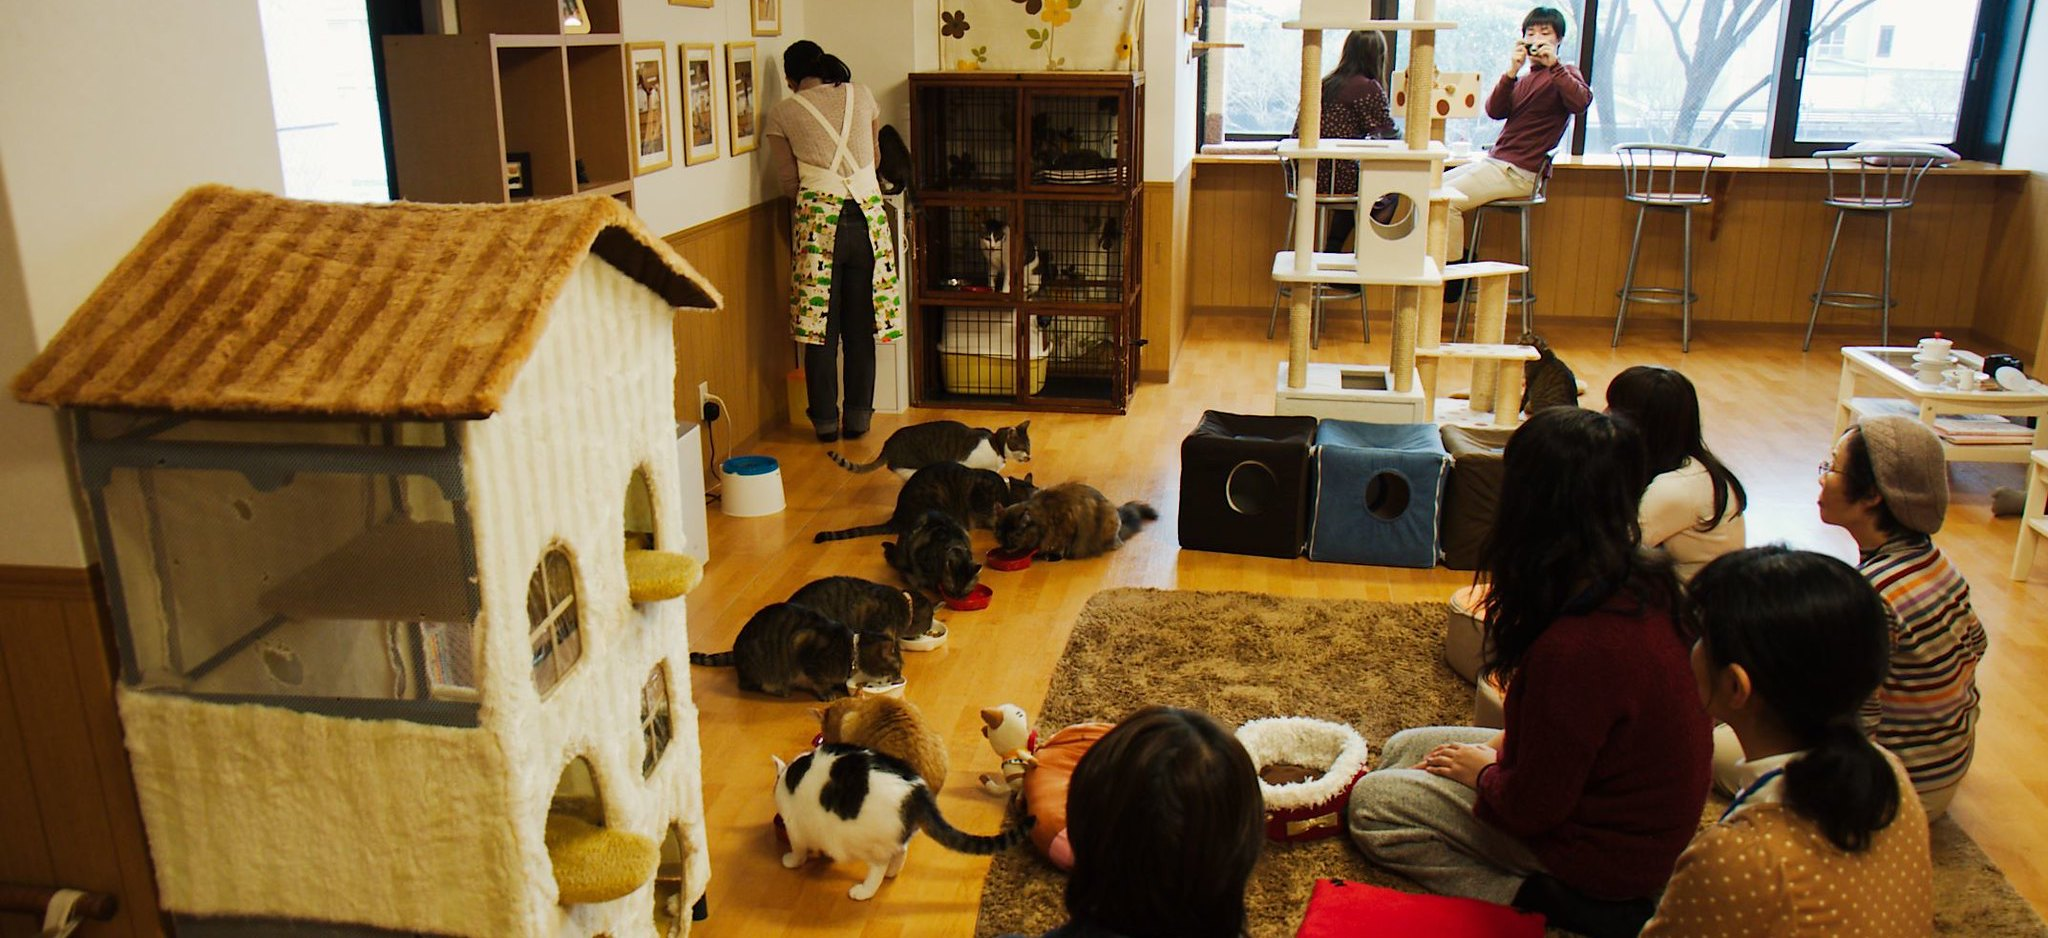 Best 9 Animal Cafes in Tokyo